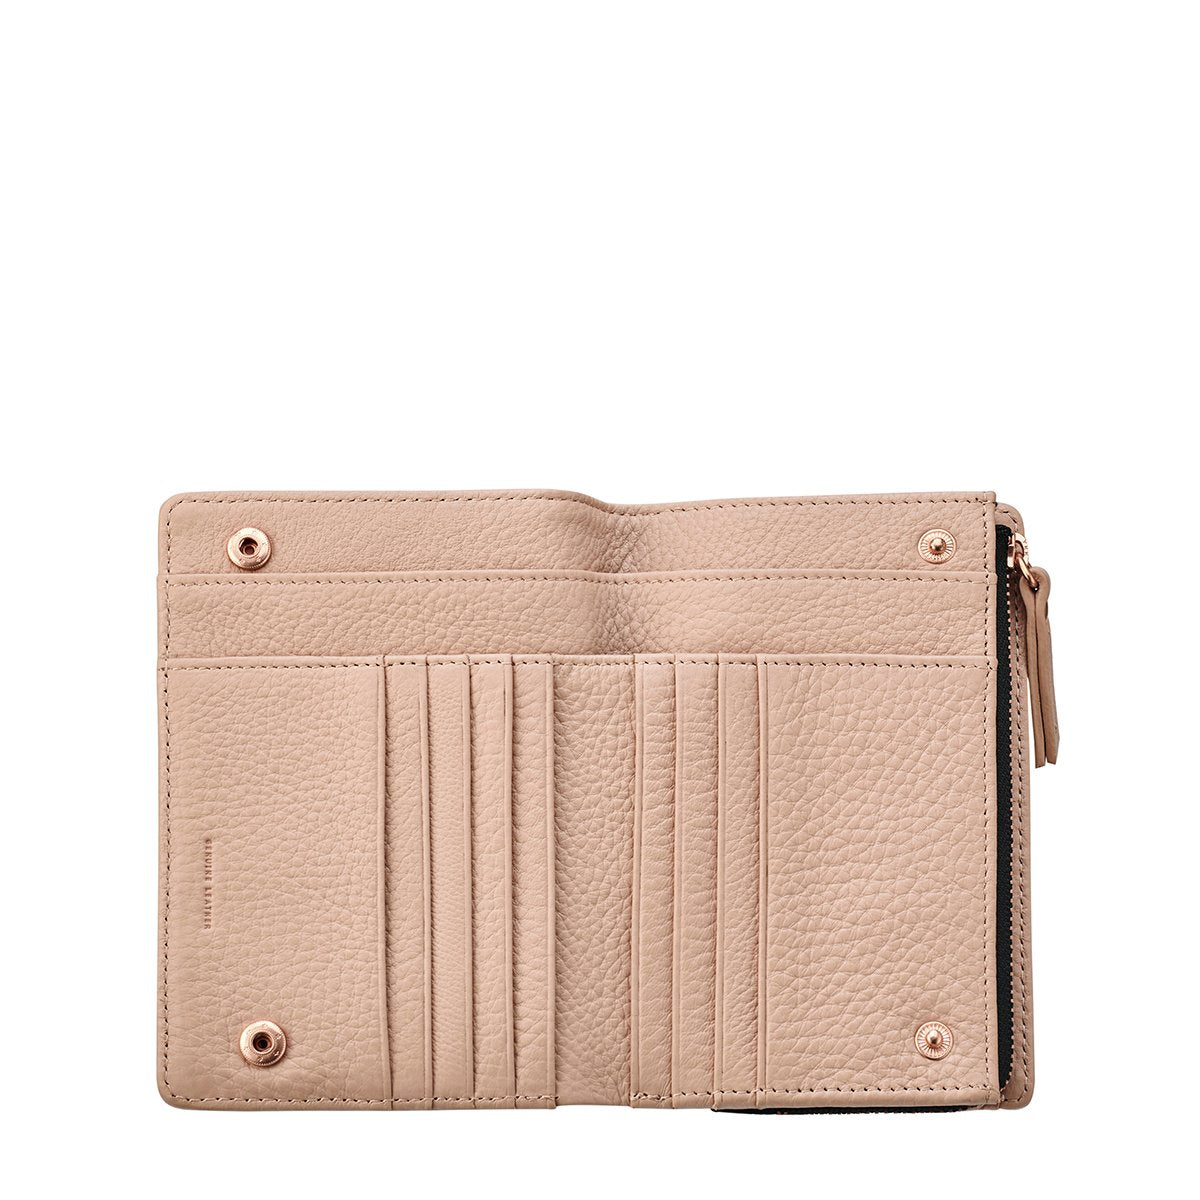 Status Anxiety Insurgency Wallet Blush Pink open view